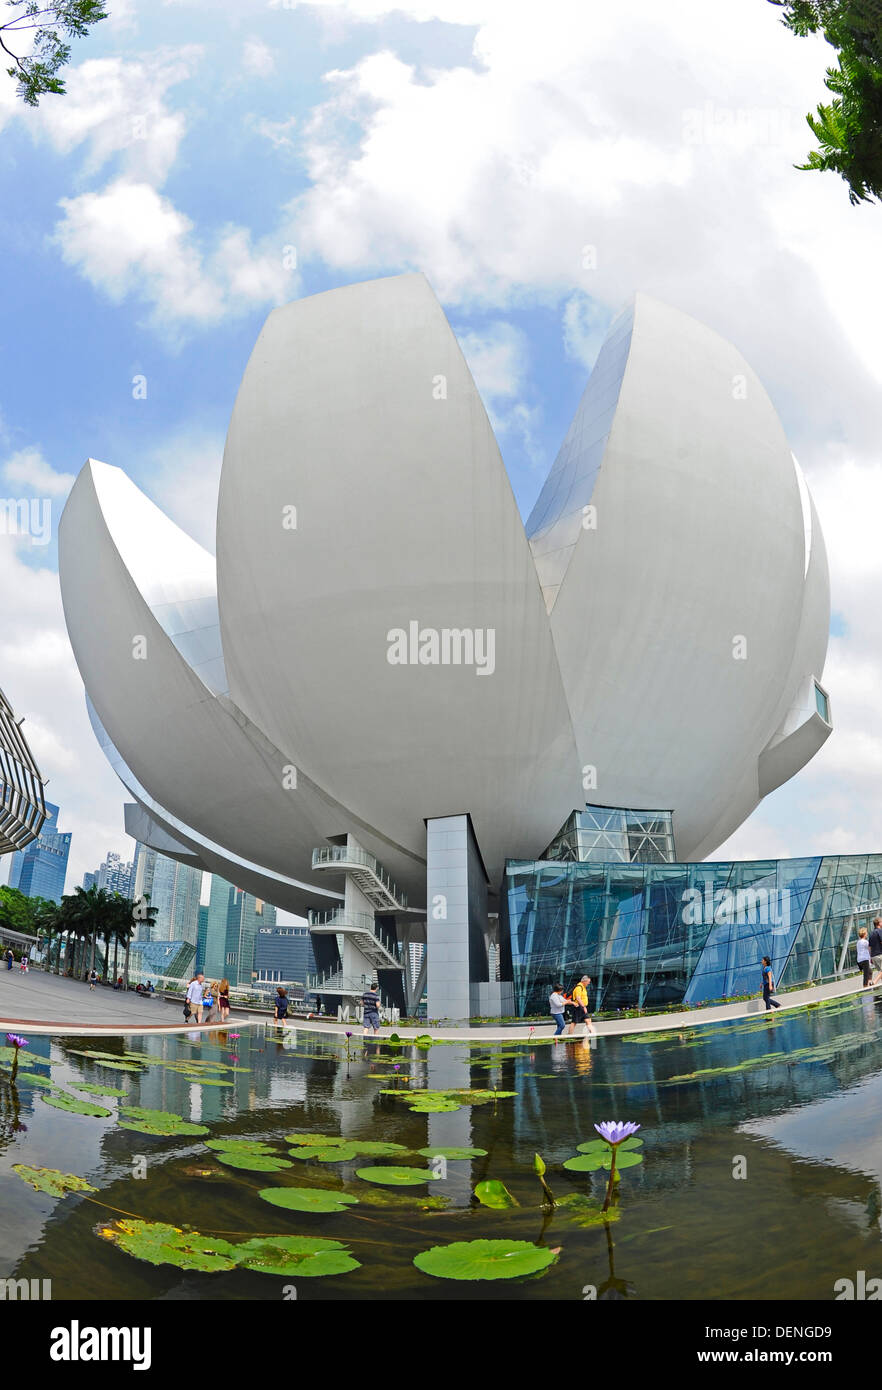 The Art Science Museum at the Marina Bay Sands in Singapore. - Stock Image